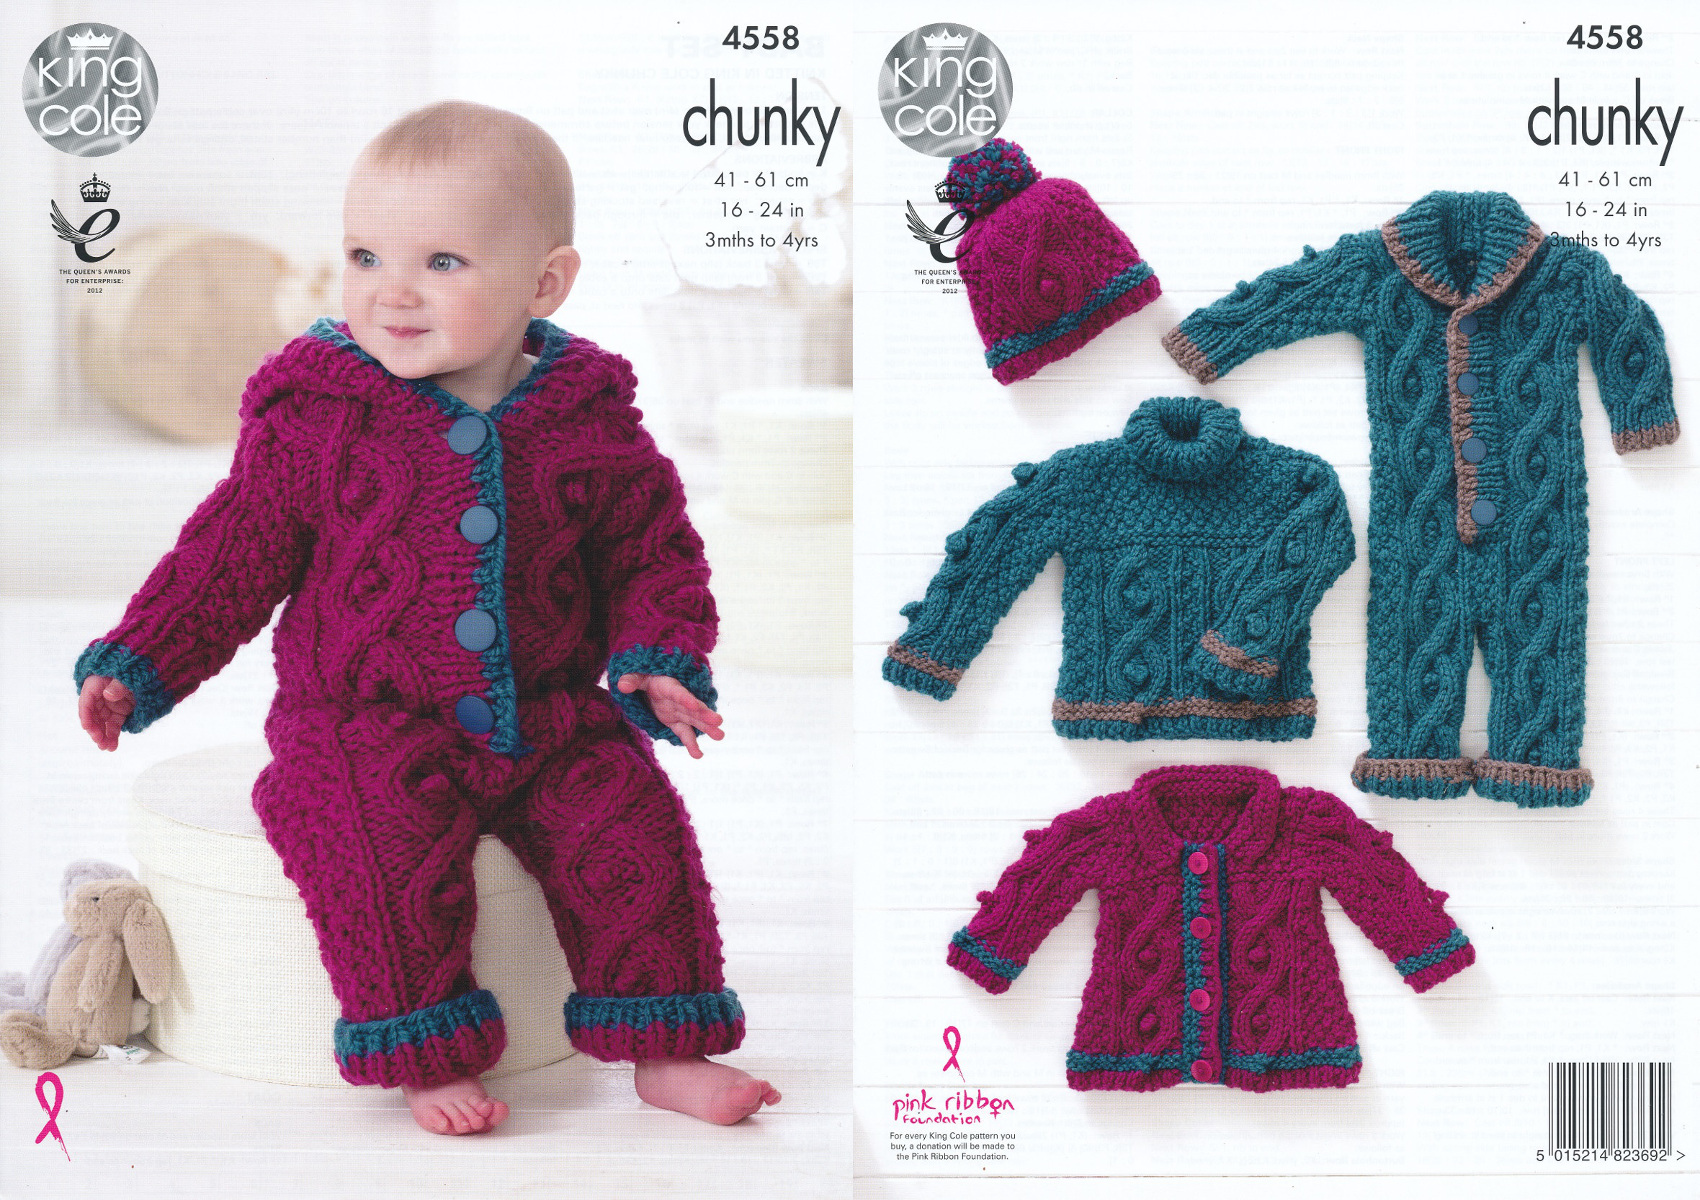 Chunky knitting pattern king cole cable knit sweater coat onesie chunky knitting pattern king cole cable knit sweater coat onesie hat set 4558 bankloansurffo Gallery